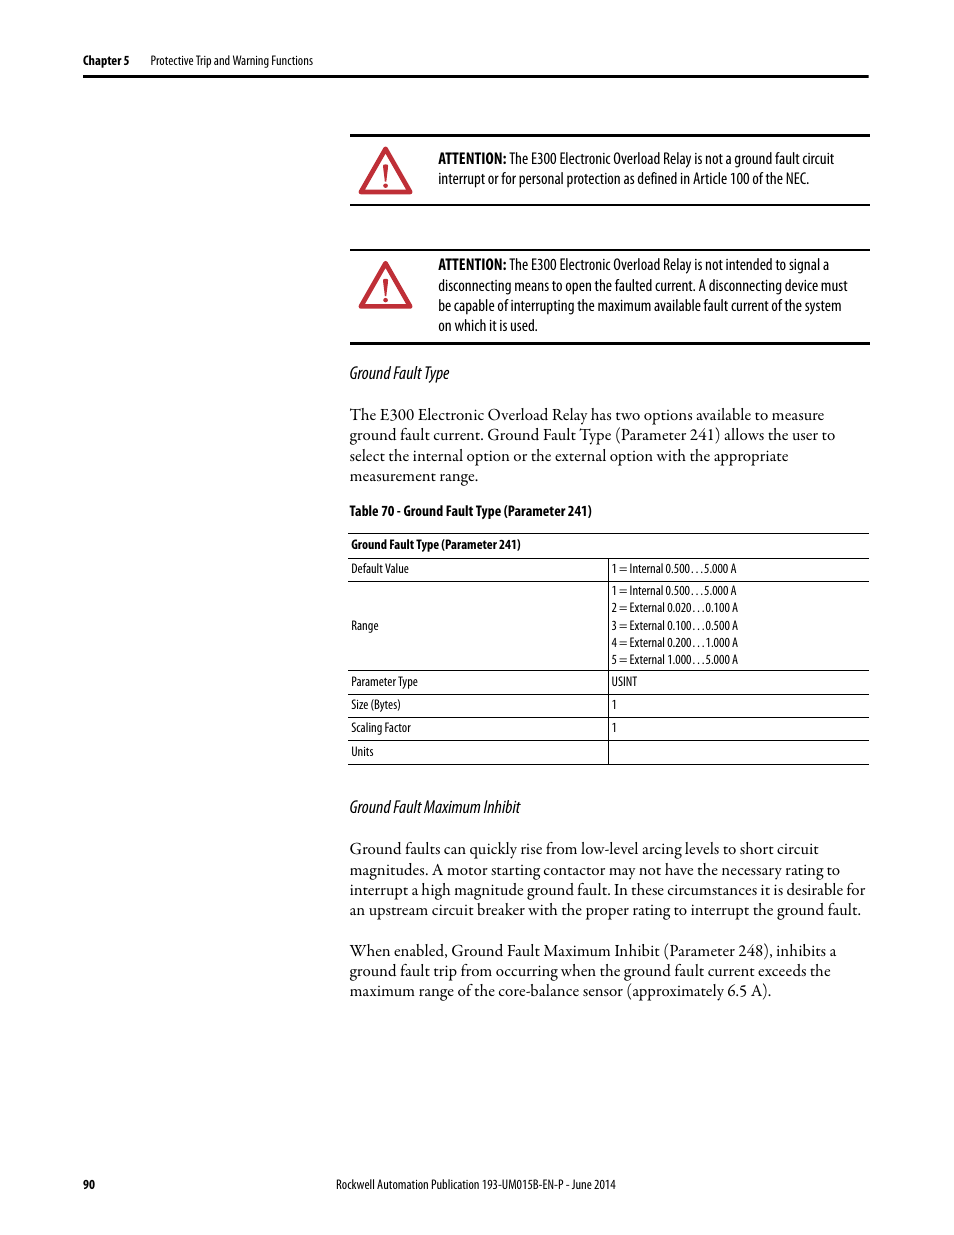 Rockwell Automation 592 E300 Overload Relay User Manual Protection From The Shortcircuit And Groundfault Device Page 90 424 Also For 193